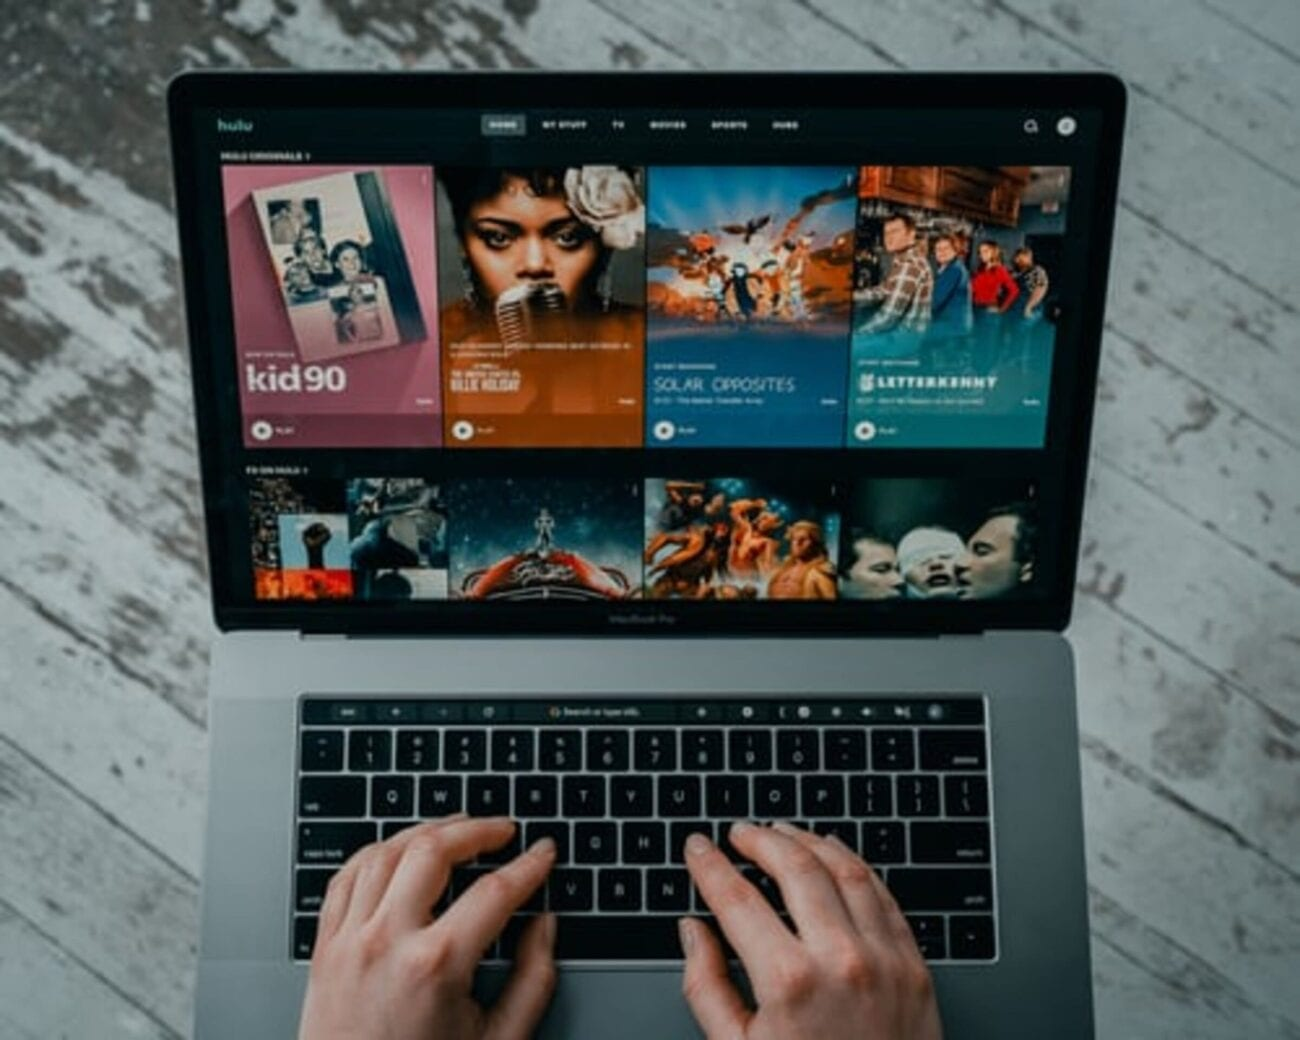 Looking to diversify your movie night, but don't want to shell out money for every streaming service? Peruse the biggest platforms before subscribing here.